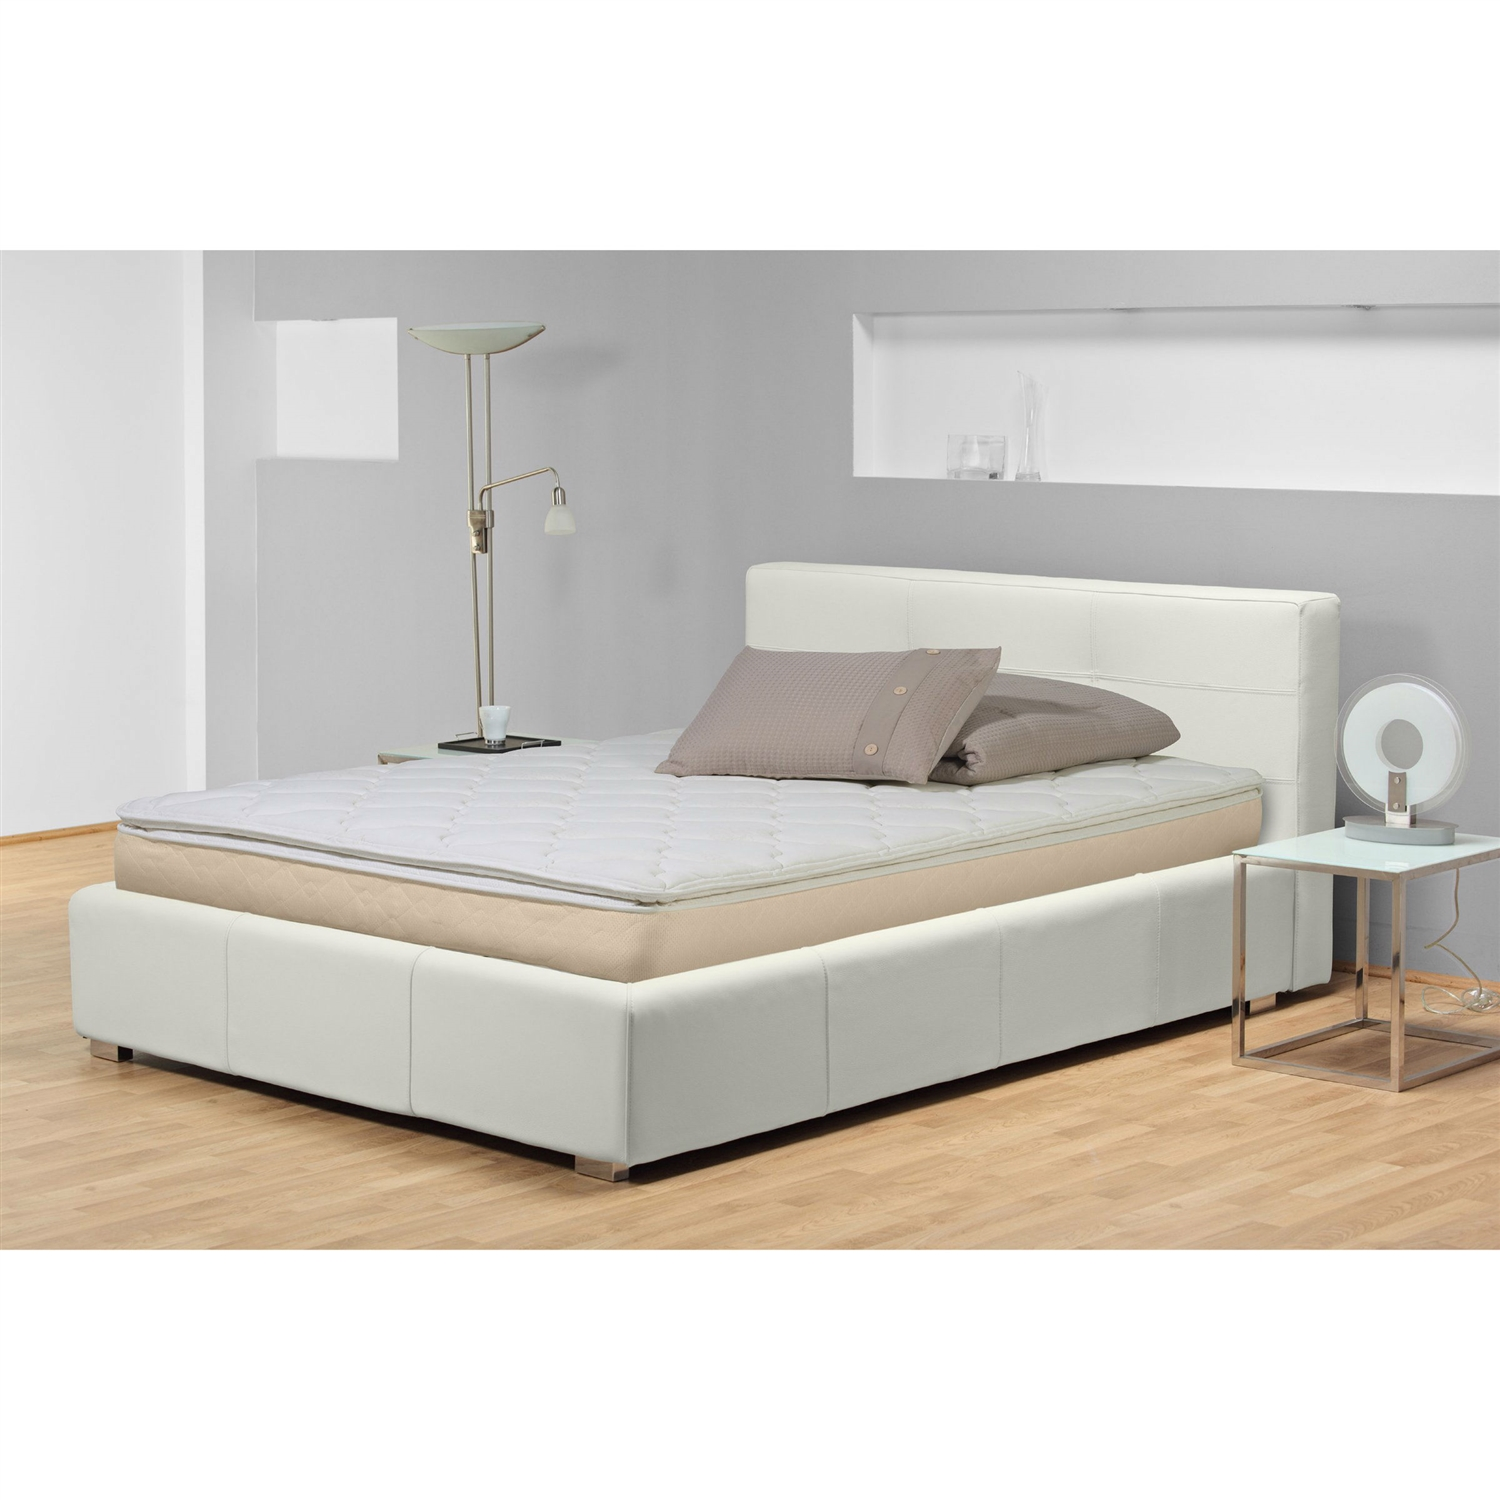 Bedroom Mattress Queen Size 10 Inch Thick Pillow Top Innerspring Mattress